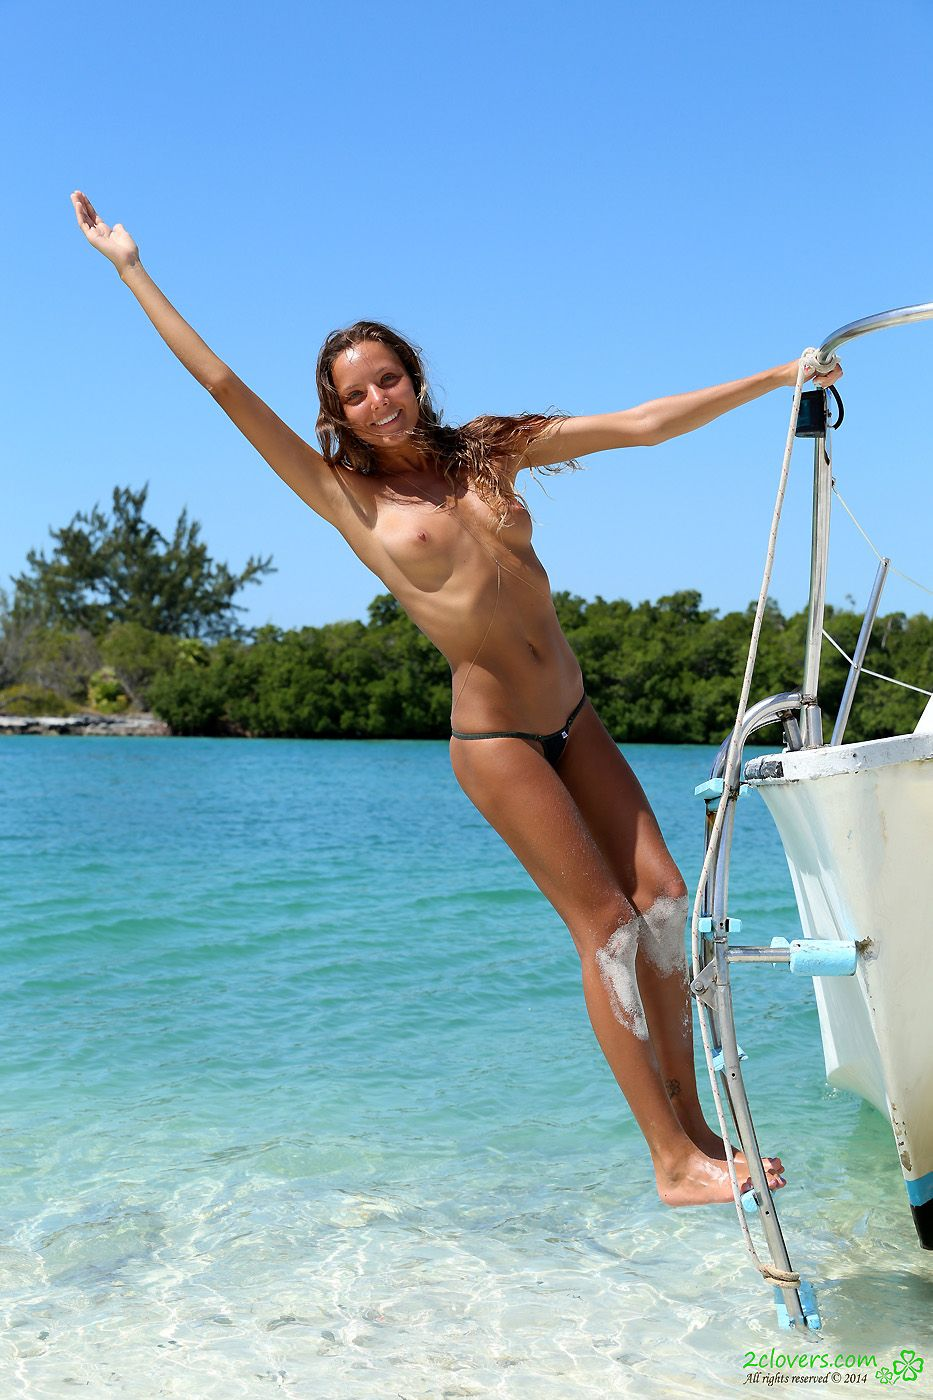 sailing in the nude